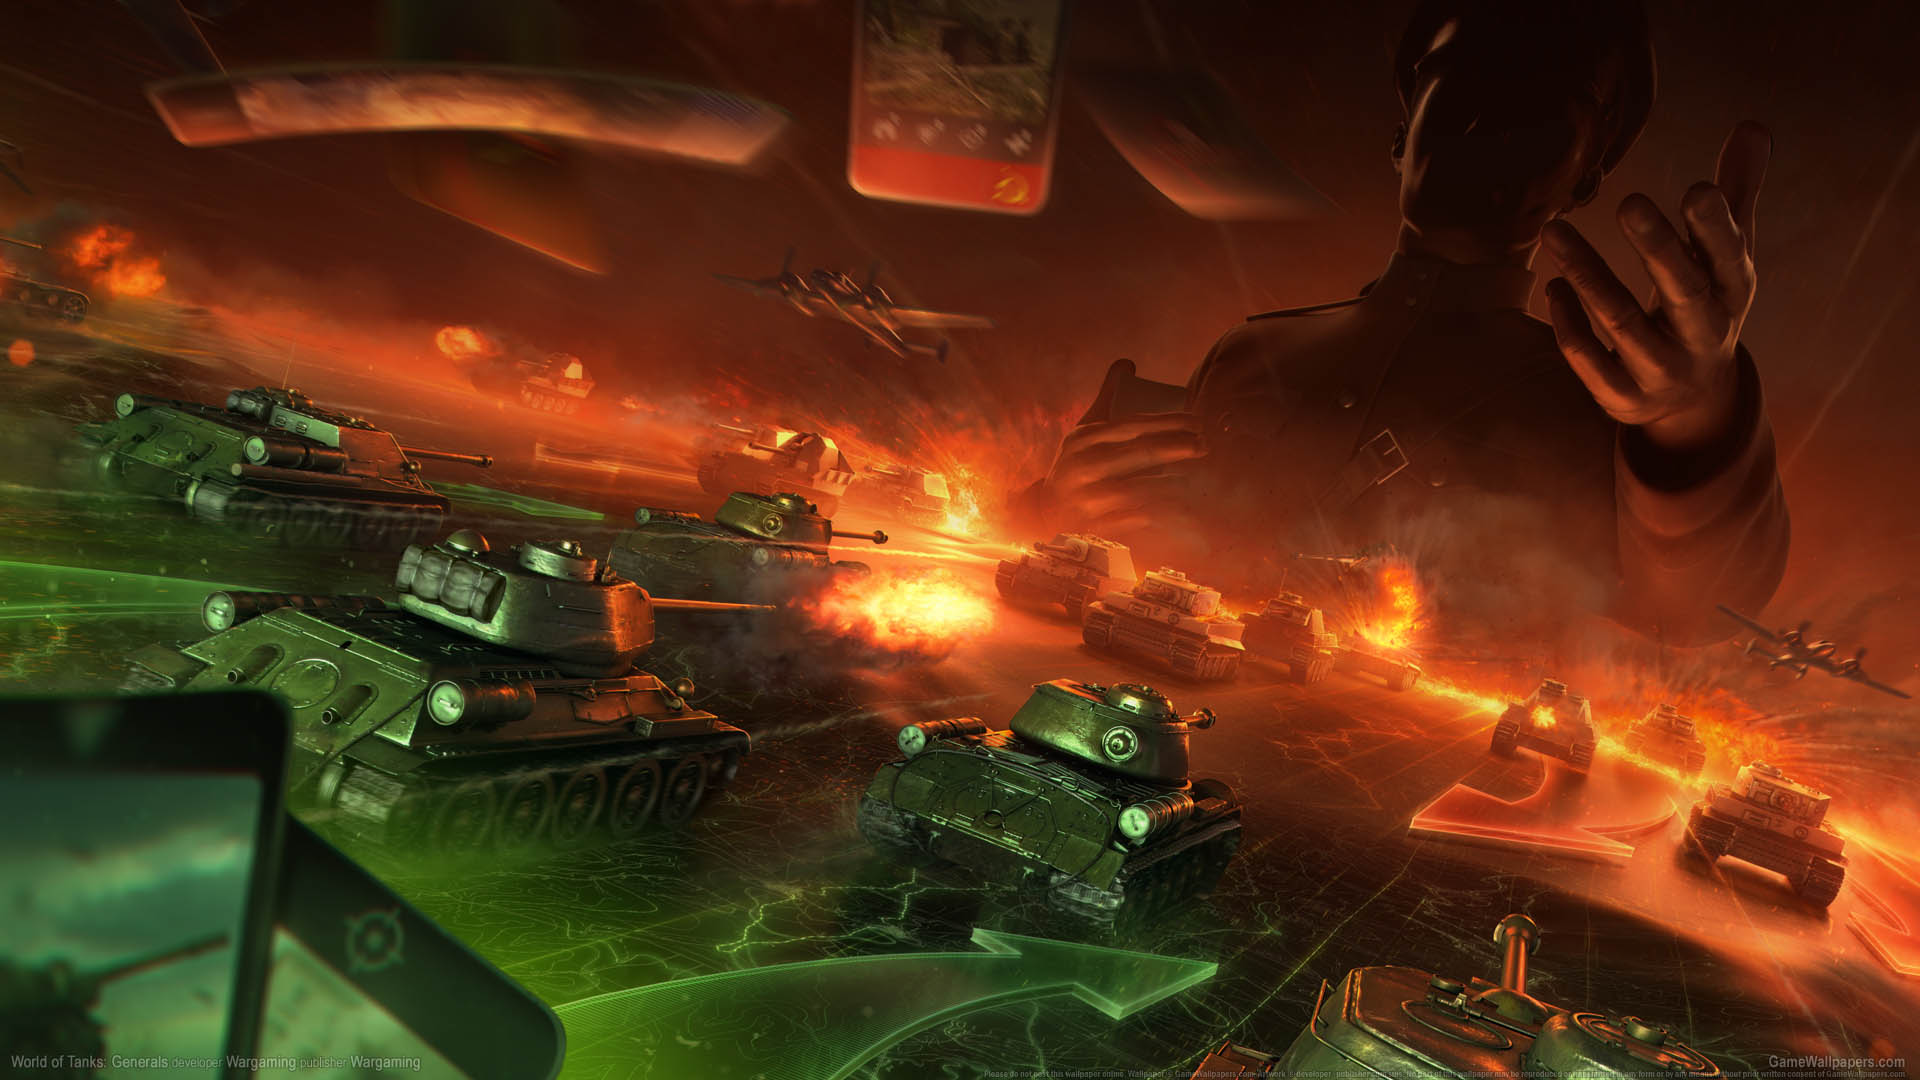 World of Tanks: Generals Hintergrundbild 01 1920x1080